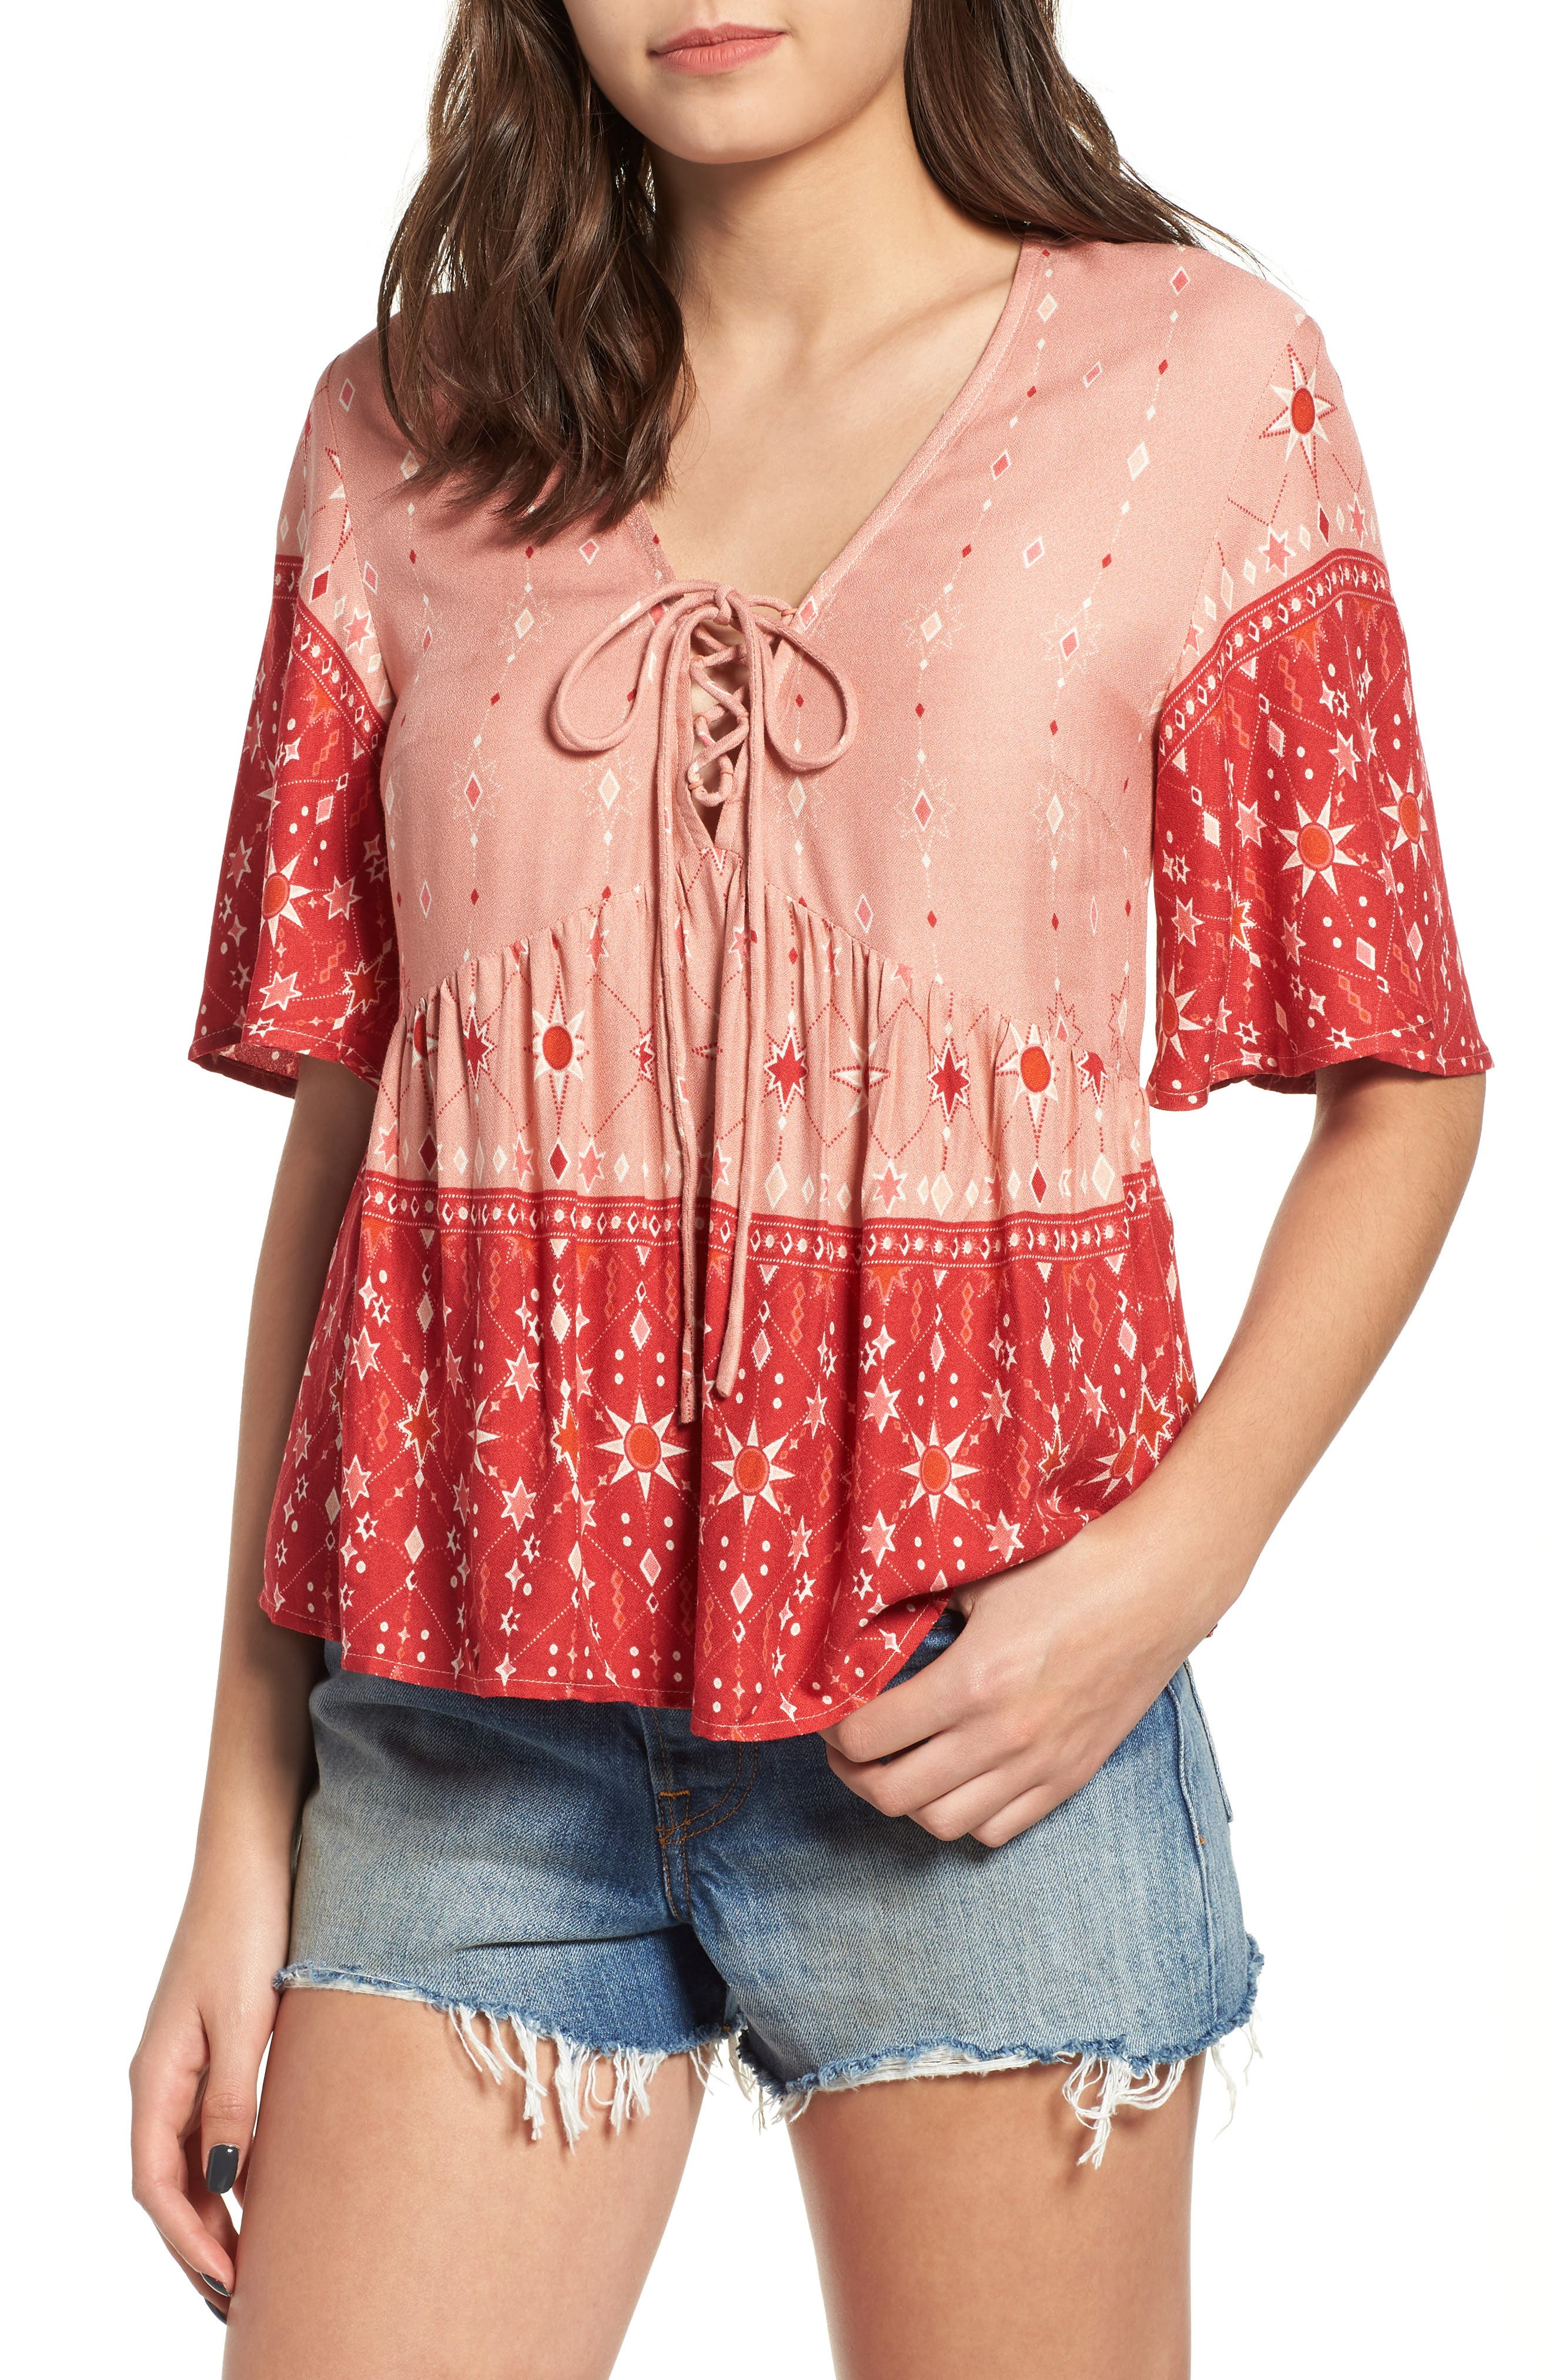 Feeling Love Bicolor Blouse,                             Main thumbnail 1, color,                             Multi